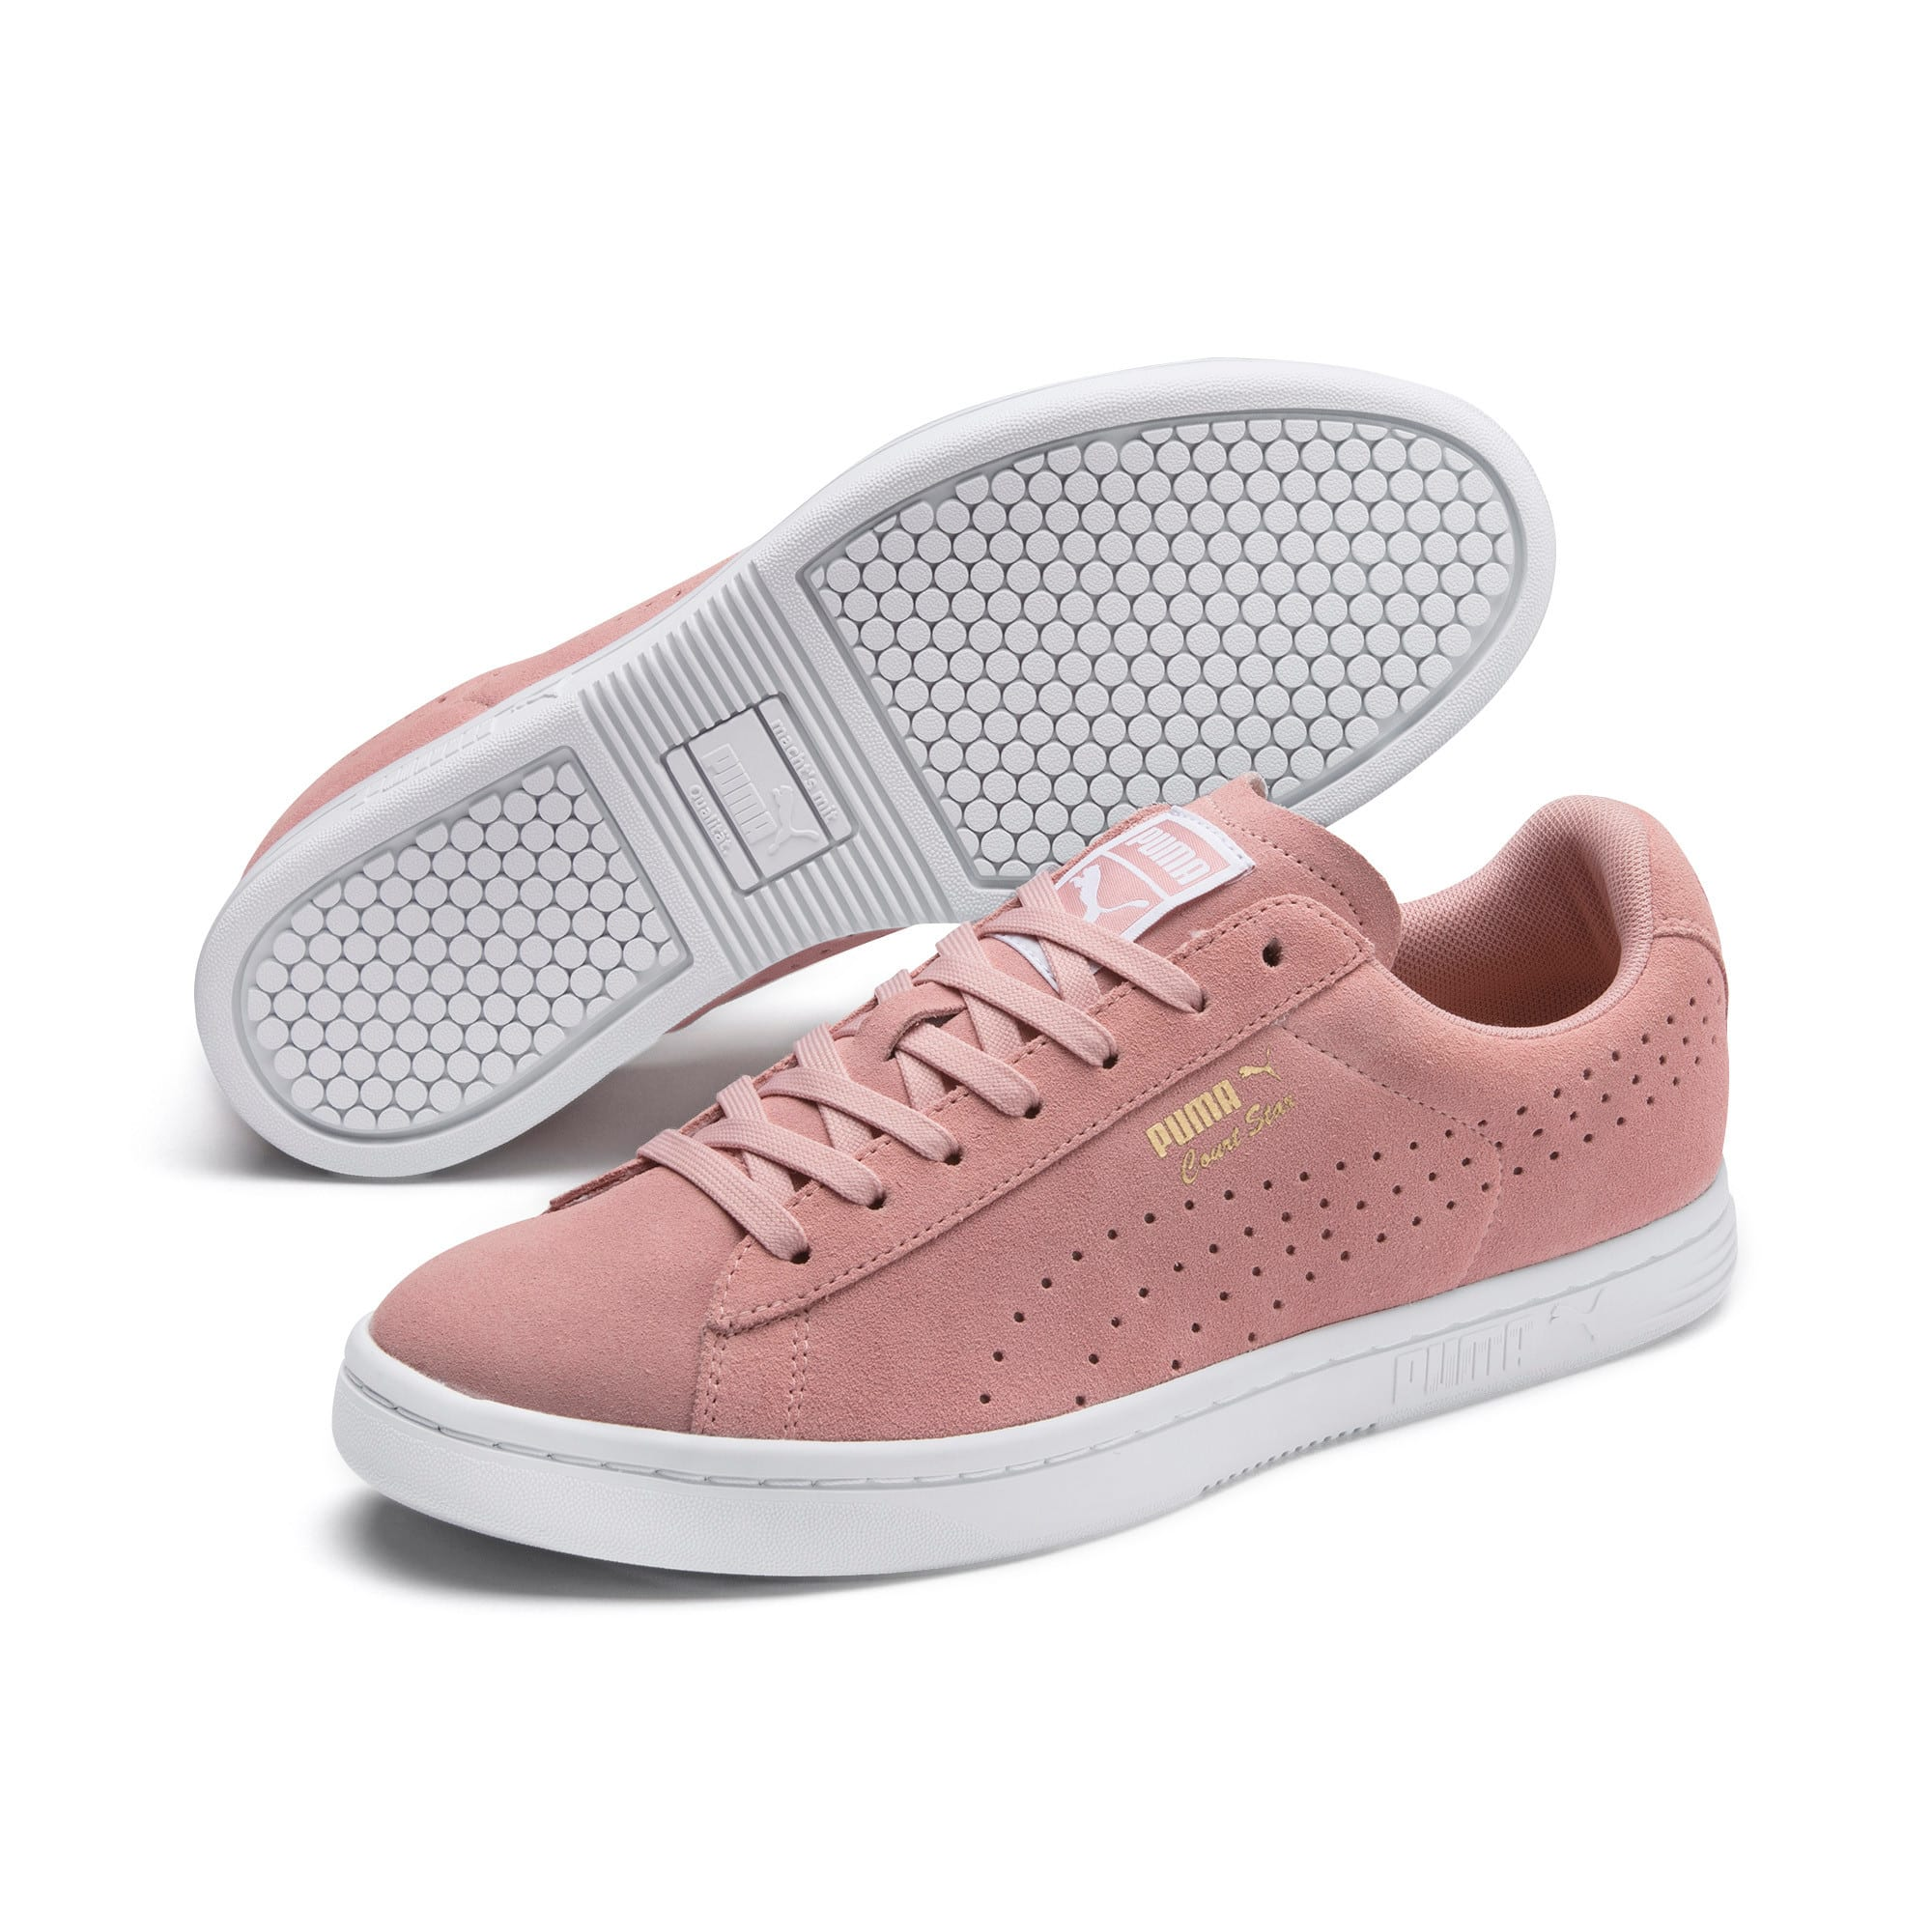 Thumbnail 2 of Court Star Suede Sneakers, Bridal Rose-Puma White, medium